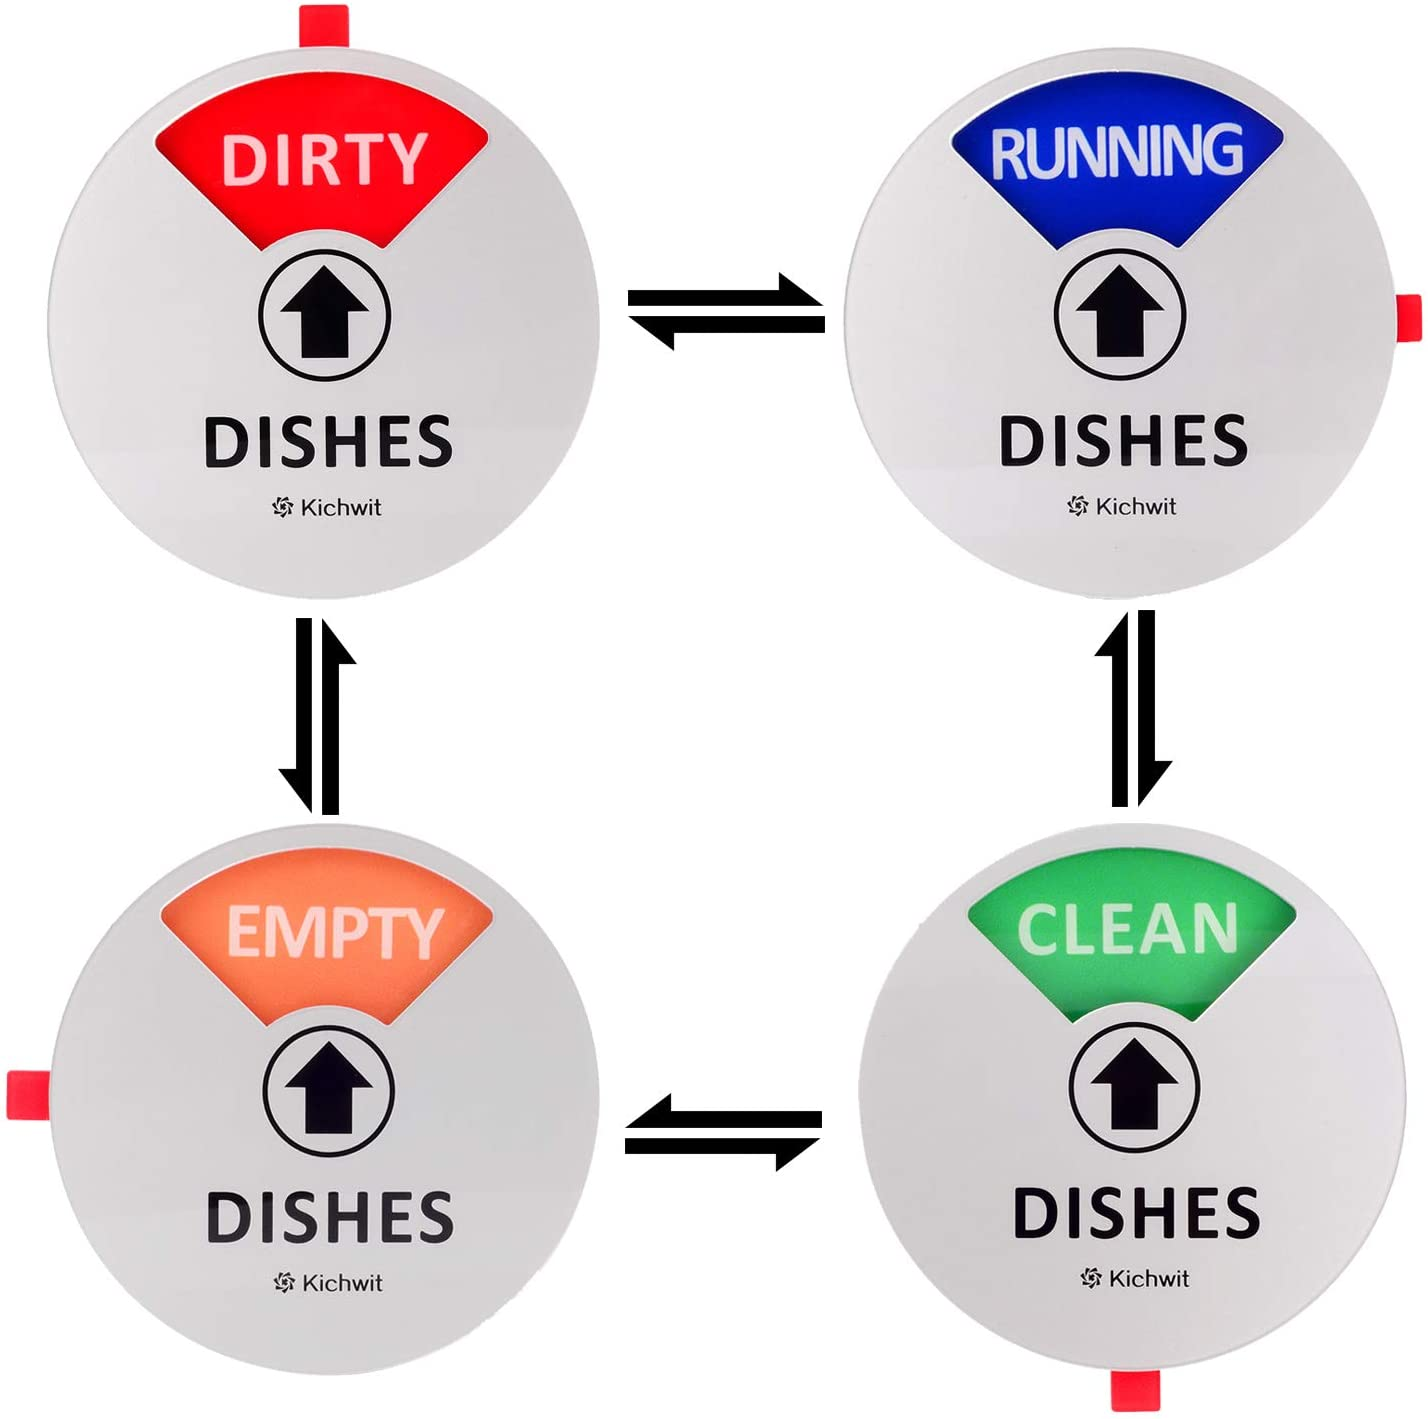 Kichwit Dishwasher Magnet Clean Dirty Runnin Popular brand in the world Indicator with Great interest Sign